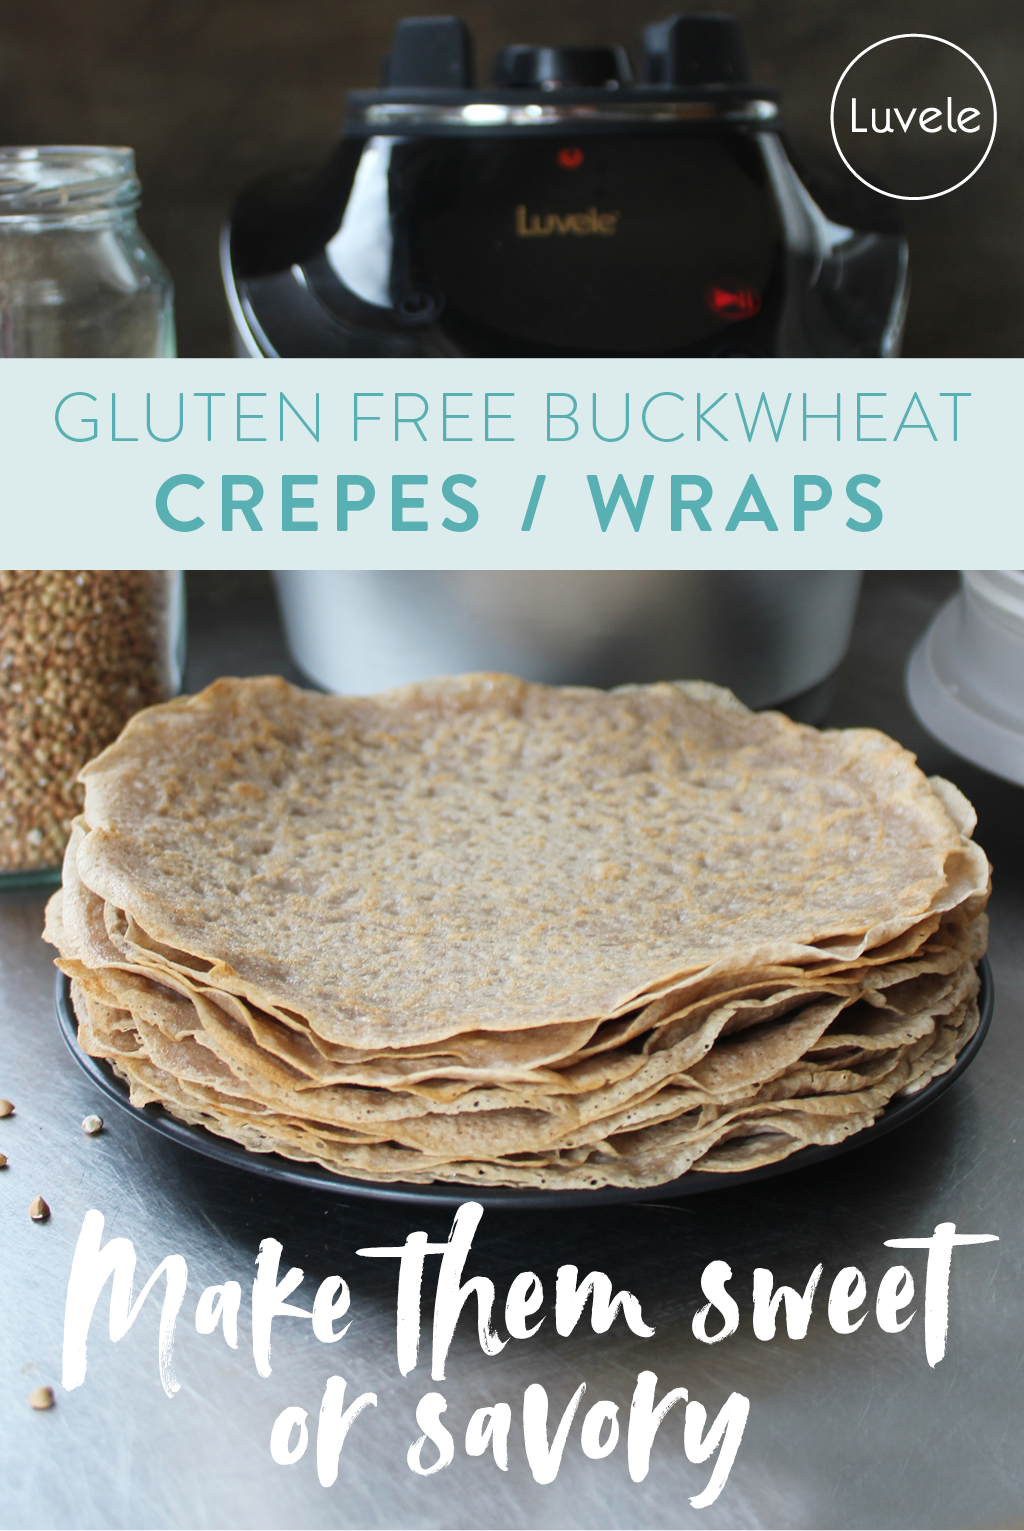 Buckwheat wraps / crepes